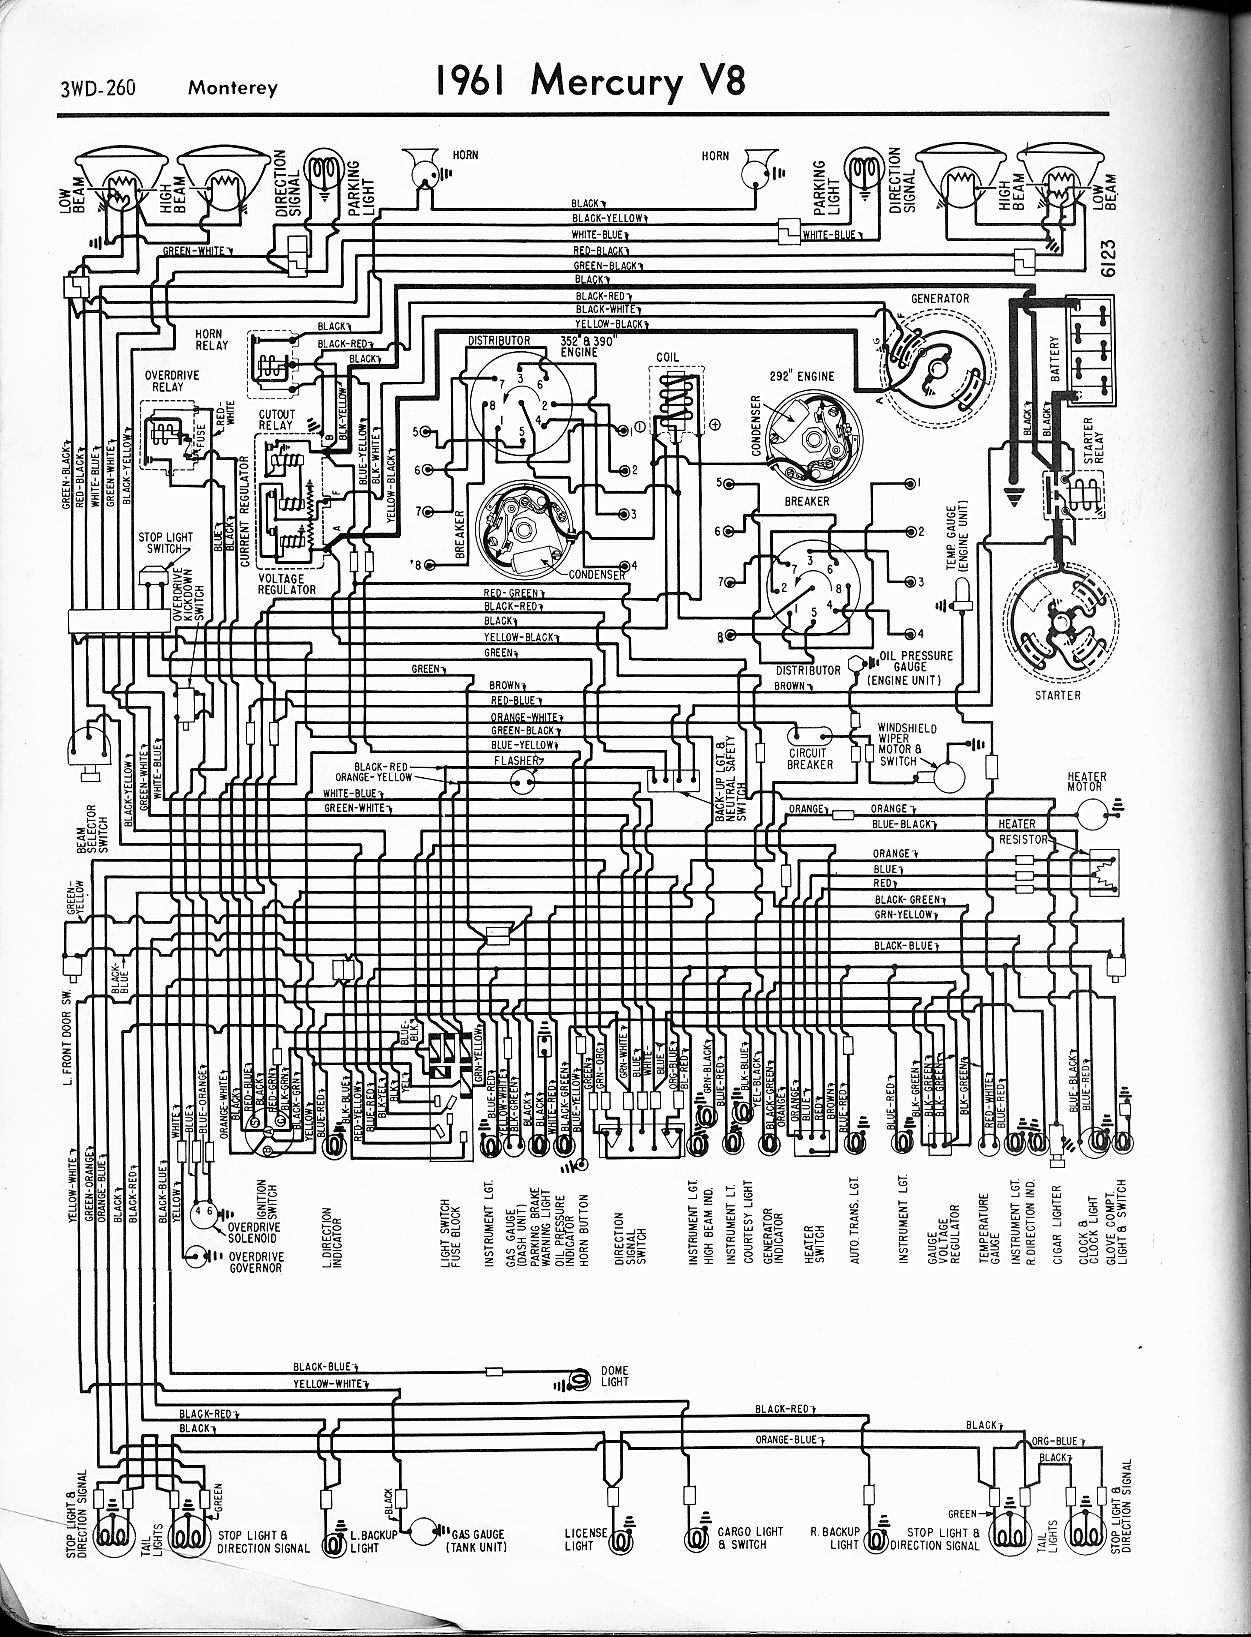 MWire5765 260 mercury wiring diagrams the old car manual project mercury wiring harness diagram at bakdesigns.co